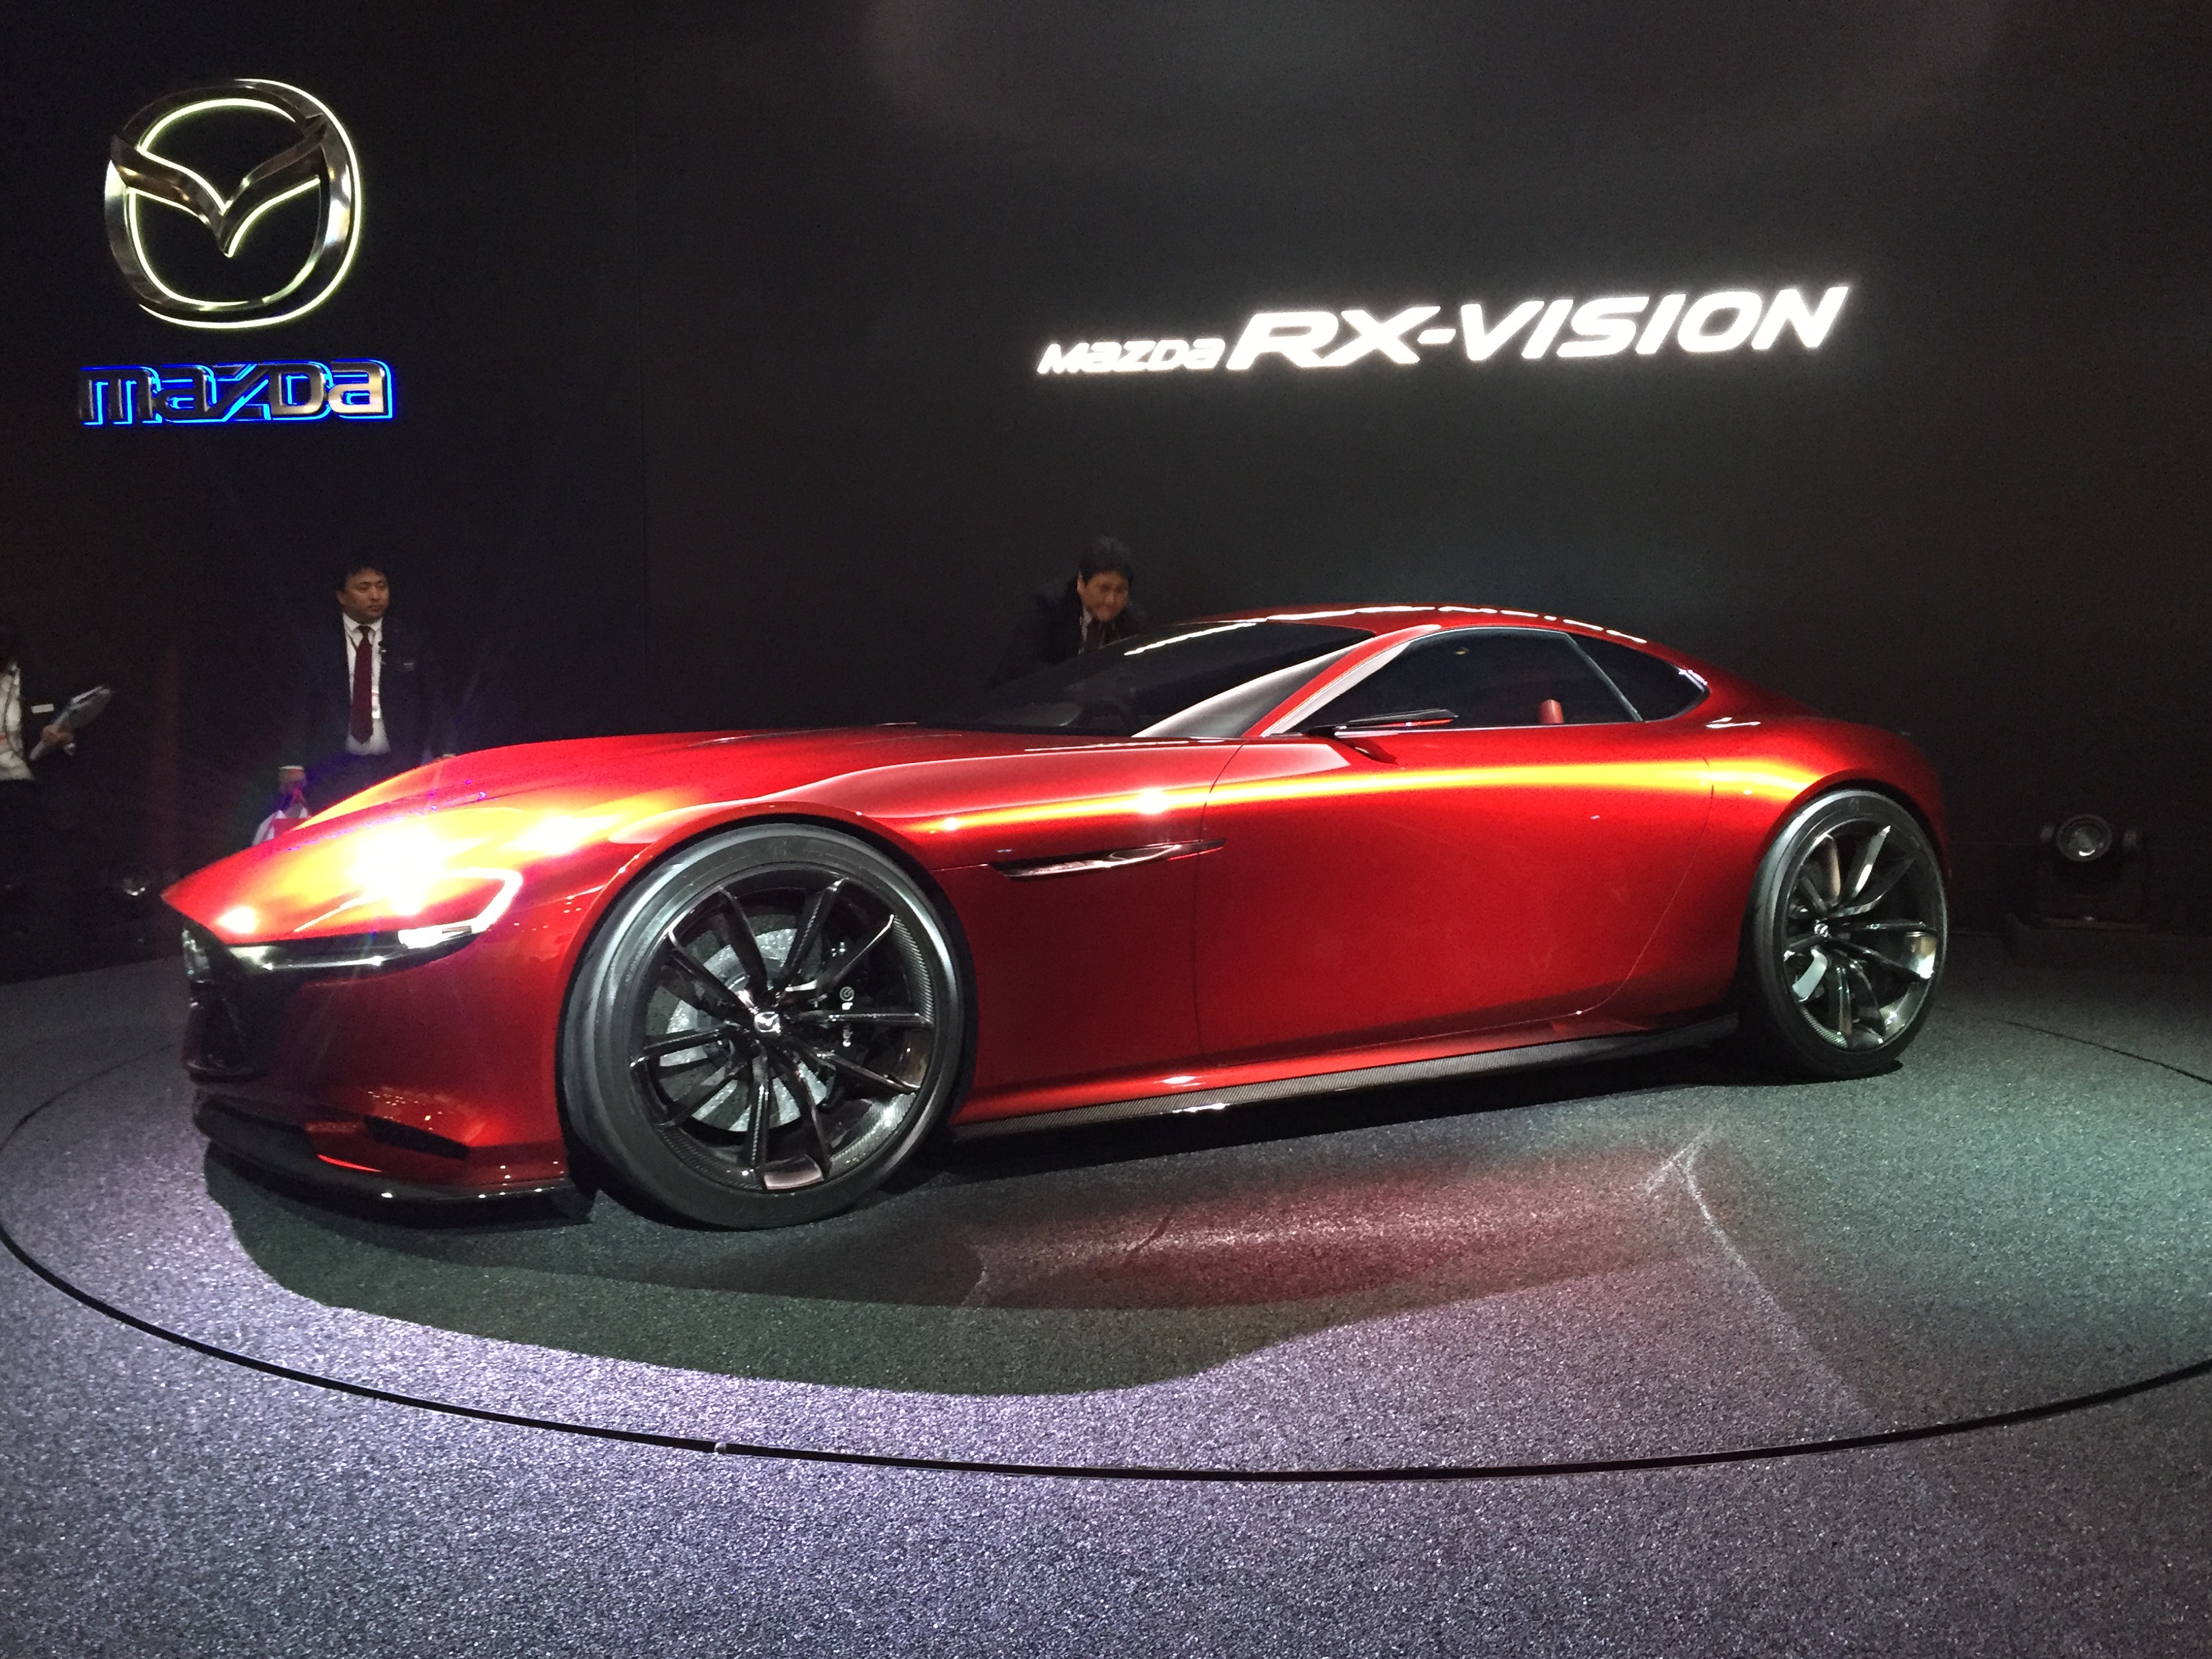 Mazda Rx Vision Concept Tokyo Motor Show H on Used Nissan Z Convertibles For Sale